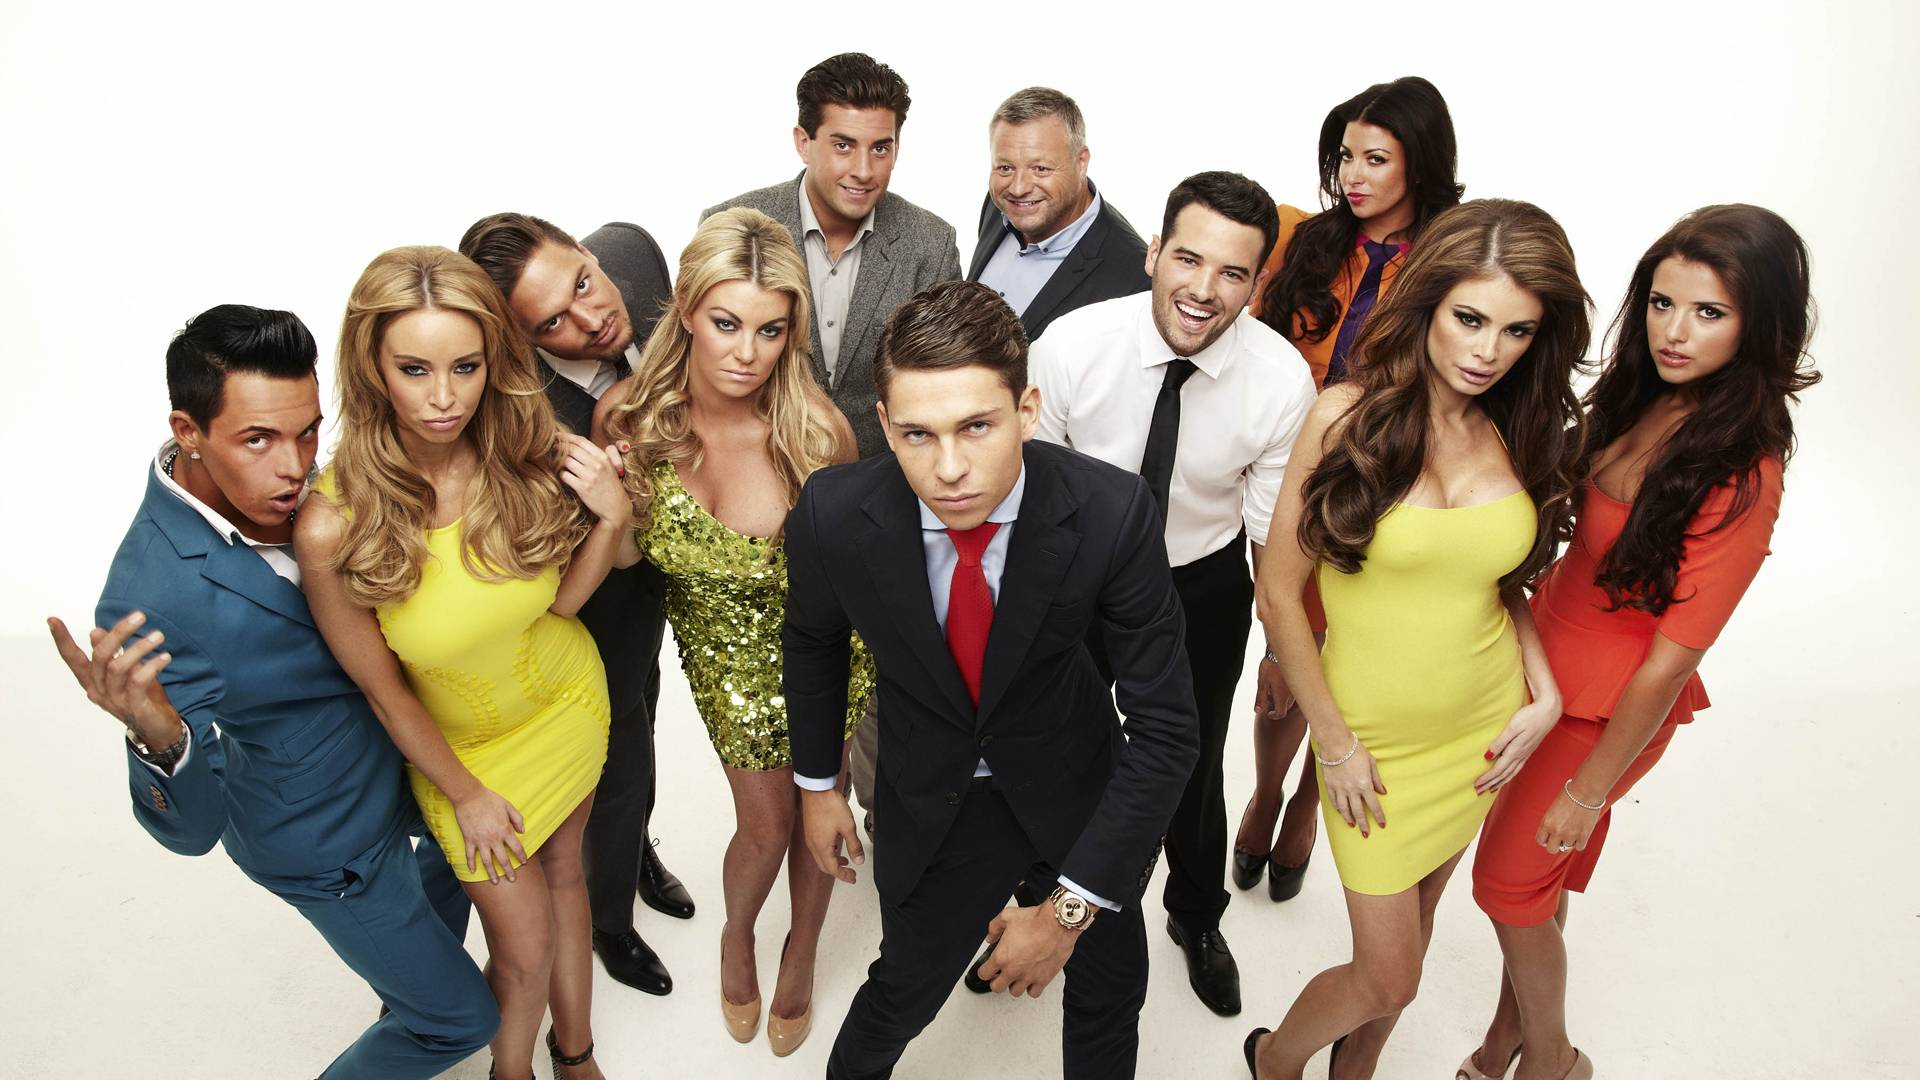 Watch the only way is essex pics 319